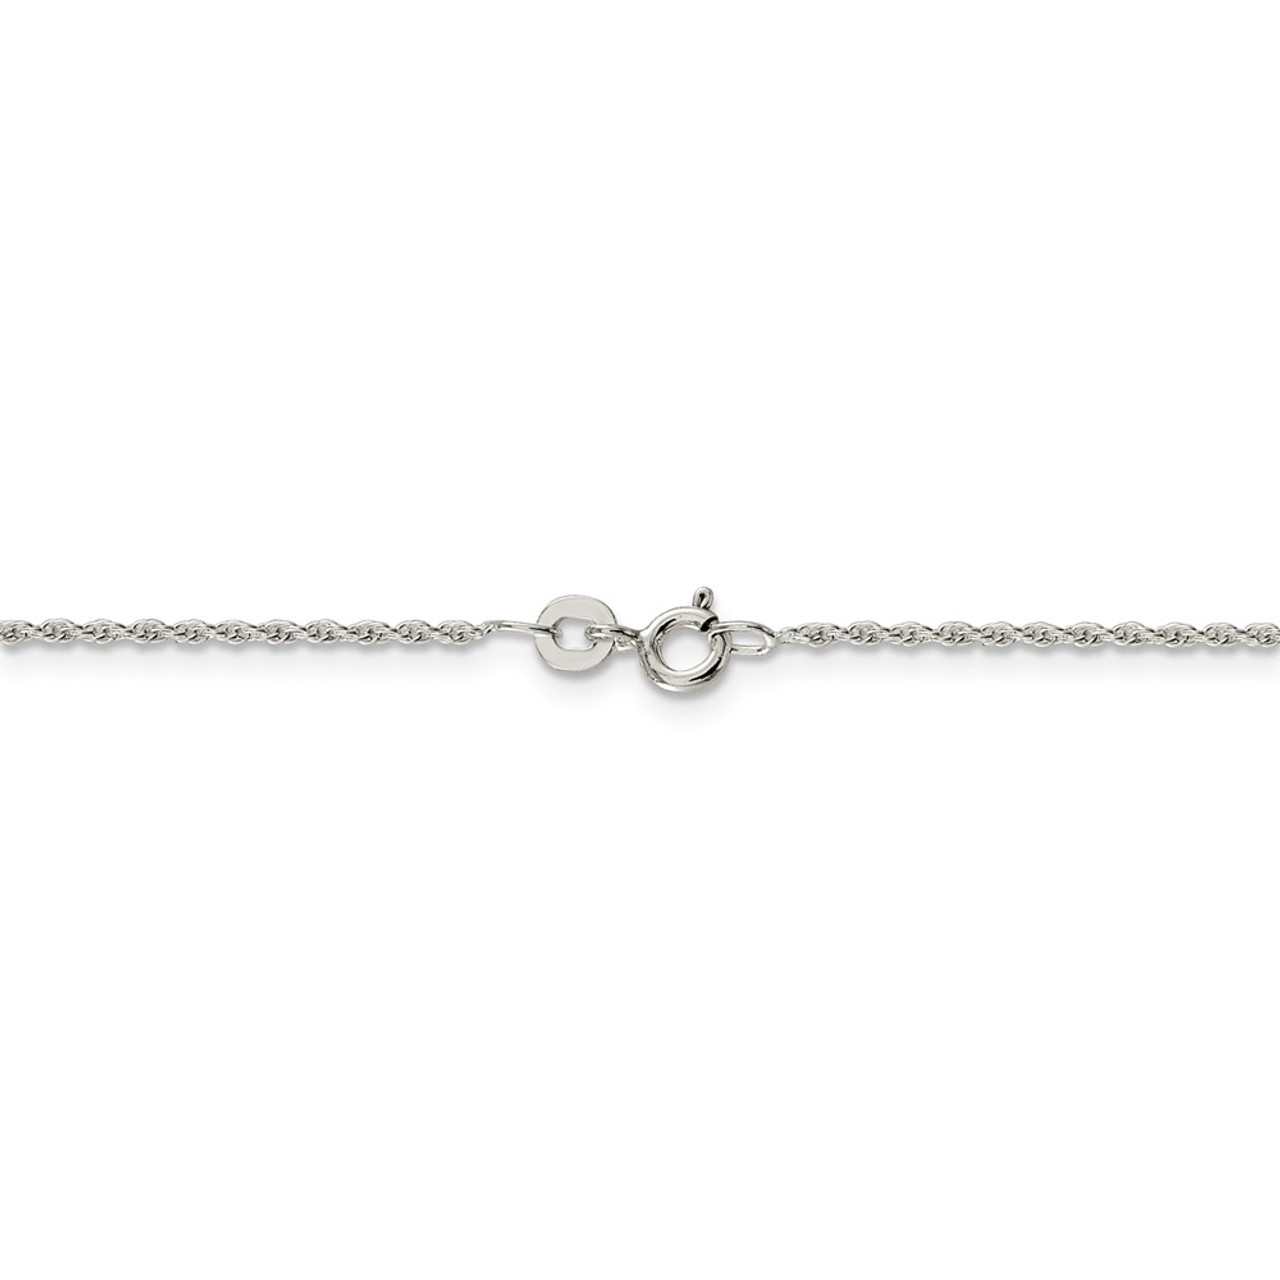 Solid 925 Sterling Silver 1.3mm Loose Rope Chain Necklace